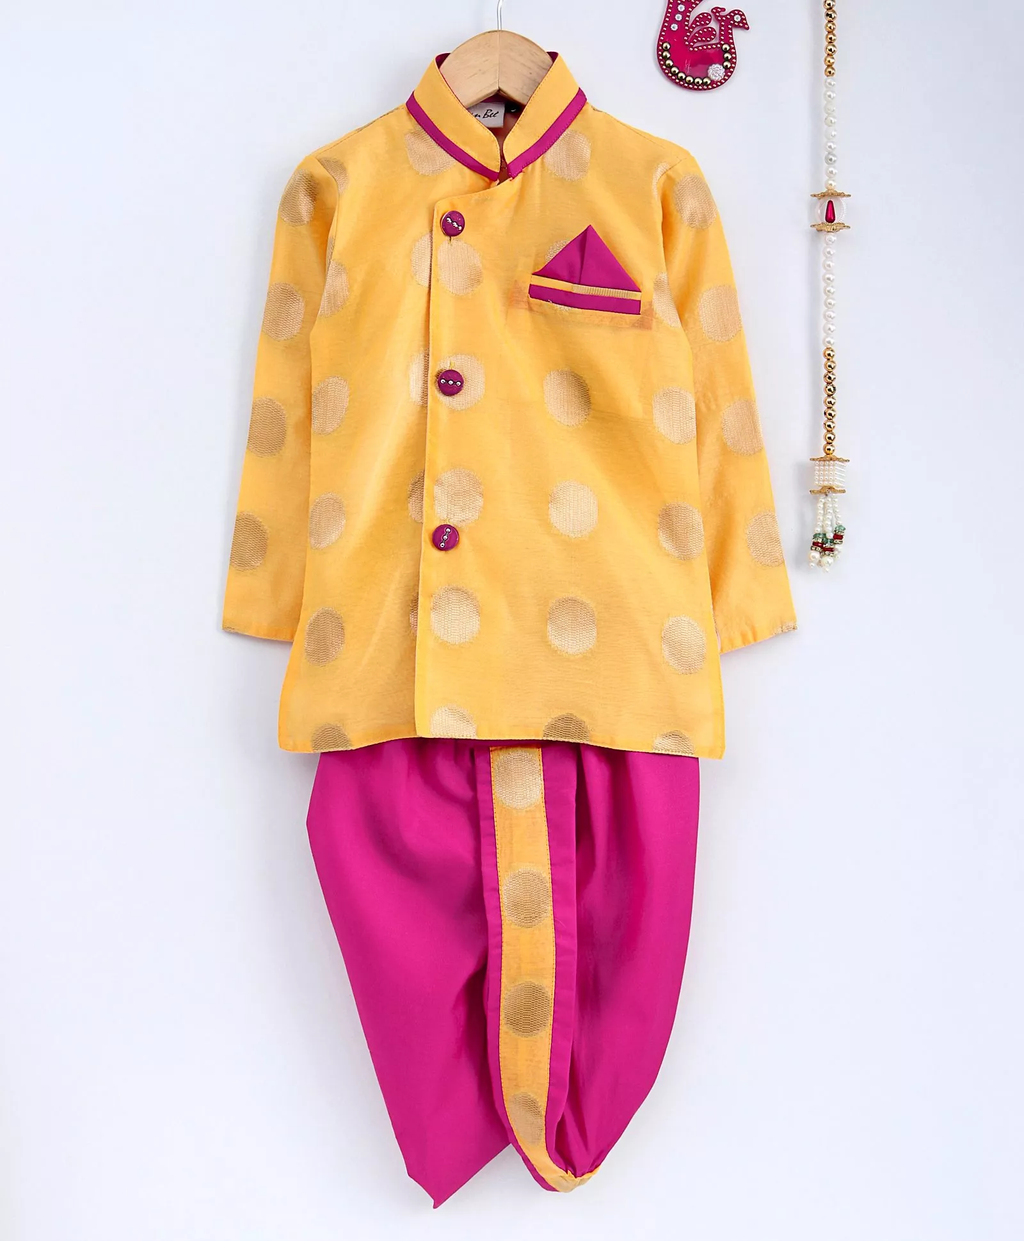 Chanderi Brocade Butti Work Full Sleeves Sherwani Style Kurta & Dhoti Set - Yellow - BownBee - Creating Special Moments